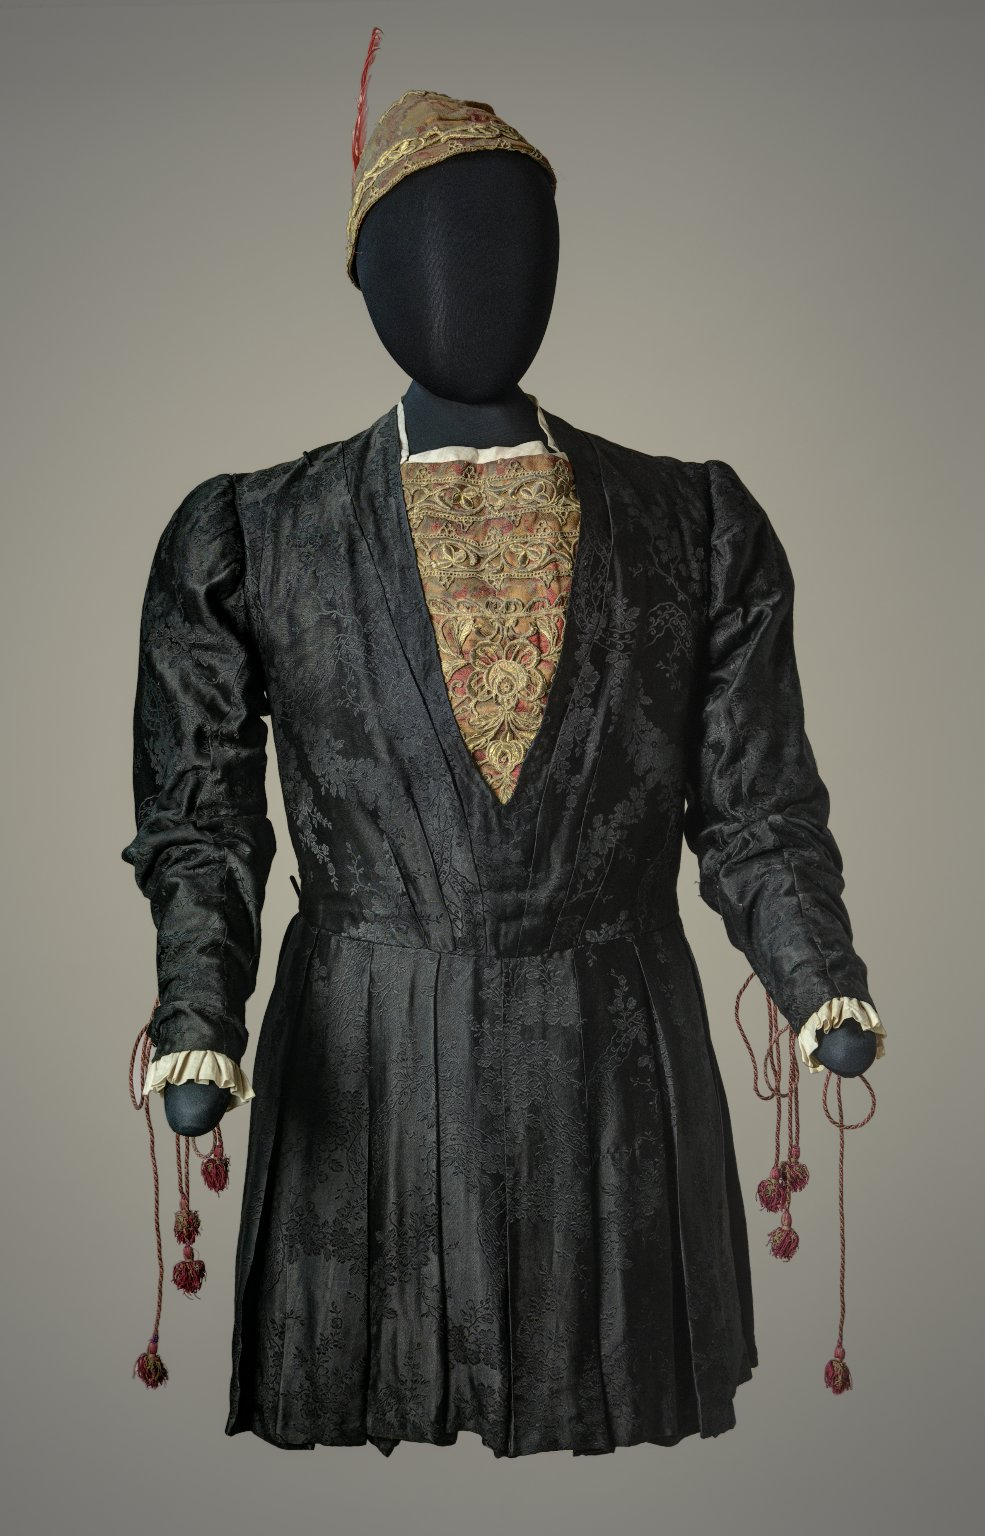 Costume worn by E. H. Sothern in the role of Romeo. Red and green cap with feather Black silk brocade doublet, gold and red brocade insert at neck.